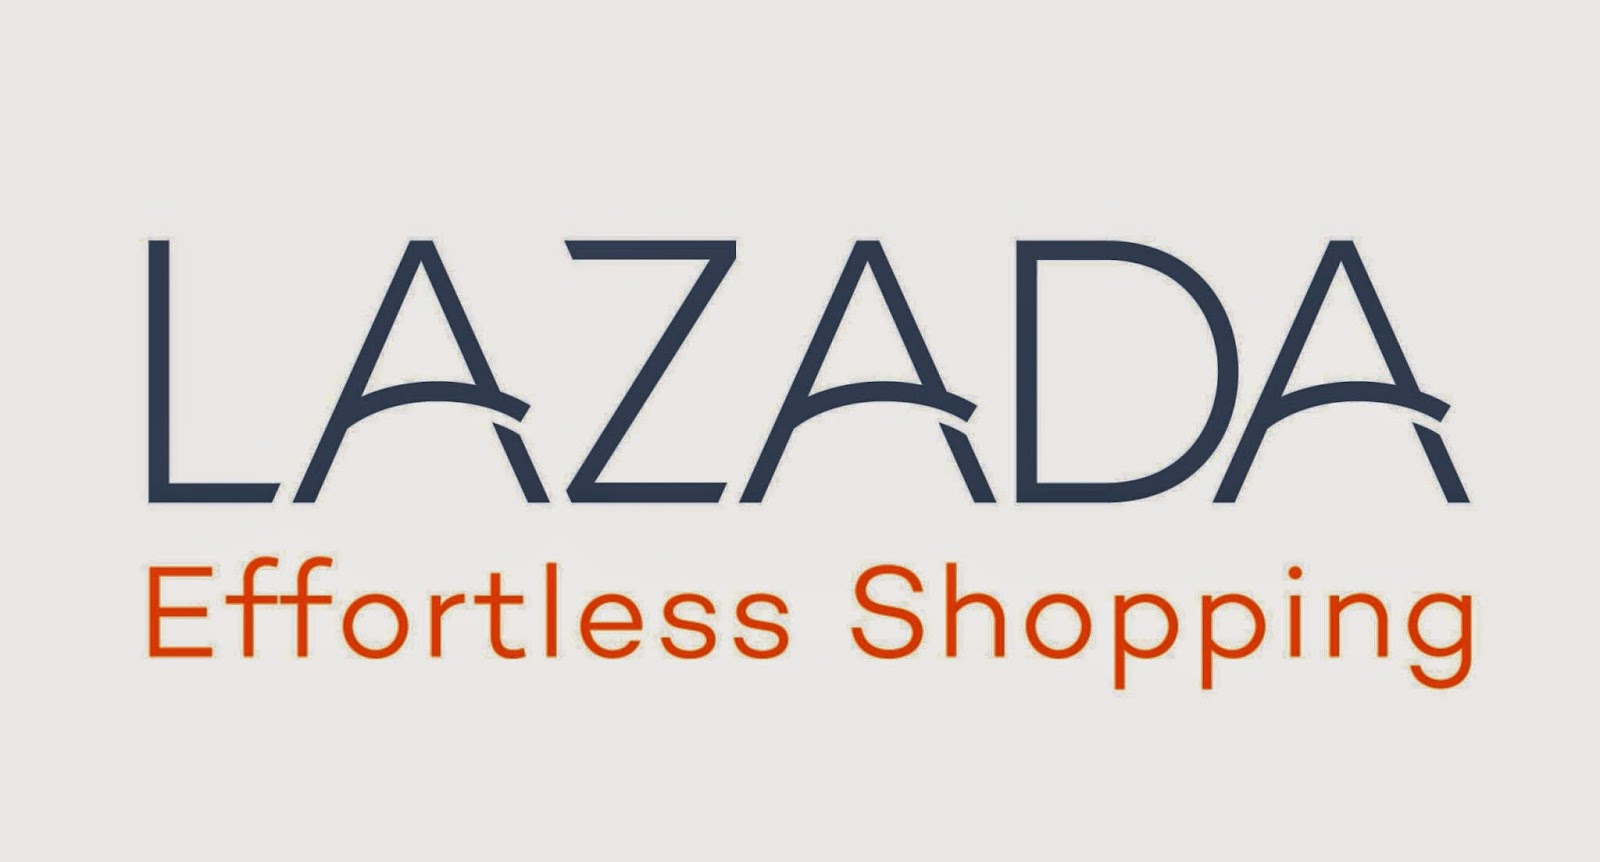 Mens jacket lazada - So Spread The Word And Take Advantage Of This Year S Opening Sale From The Philippines Biggest Online Shopping Mall Www Lazada Com Ph